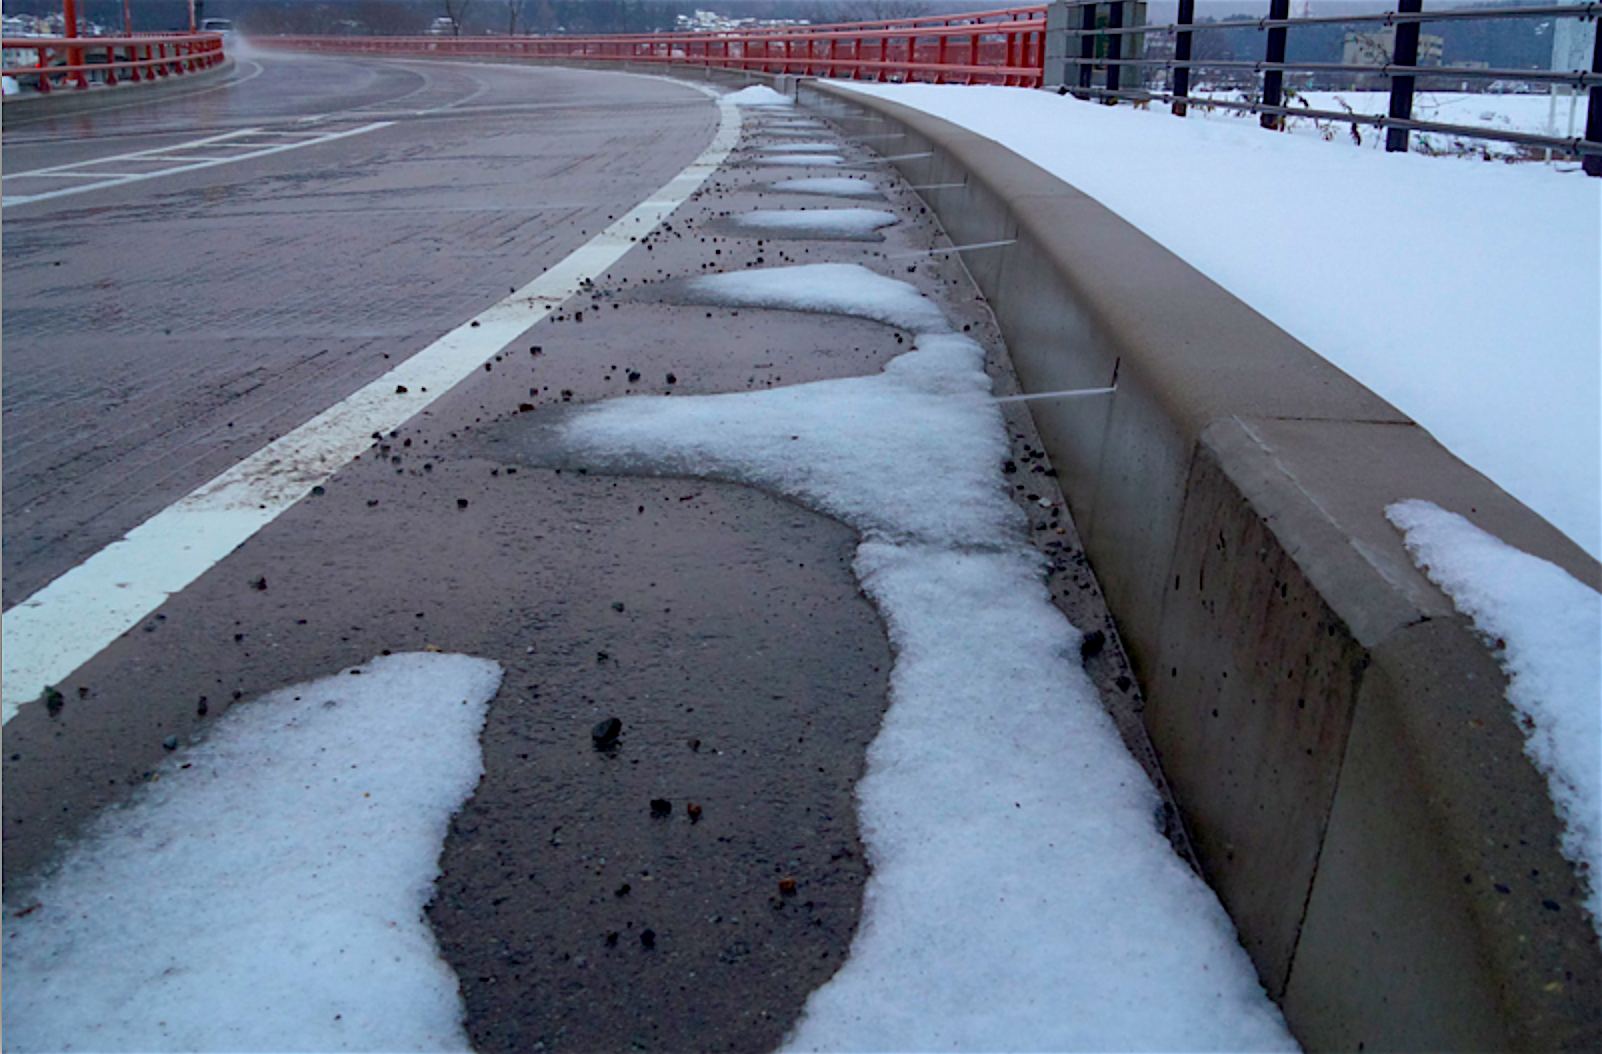 Wax On, Melt Off—Adding Paraffin to Concrete Can Help Roads Clear Themselves in The Winter